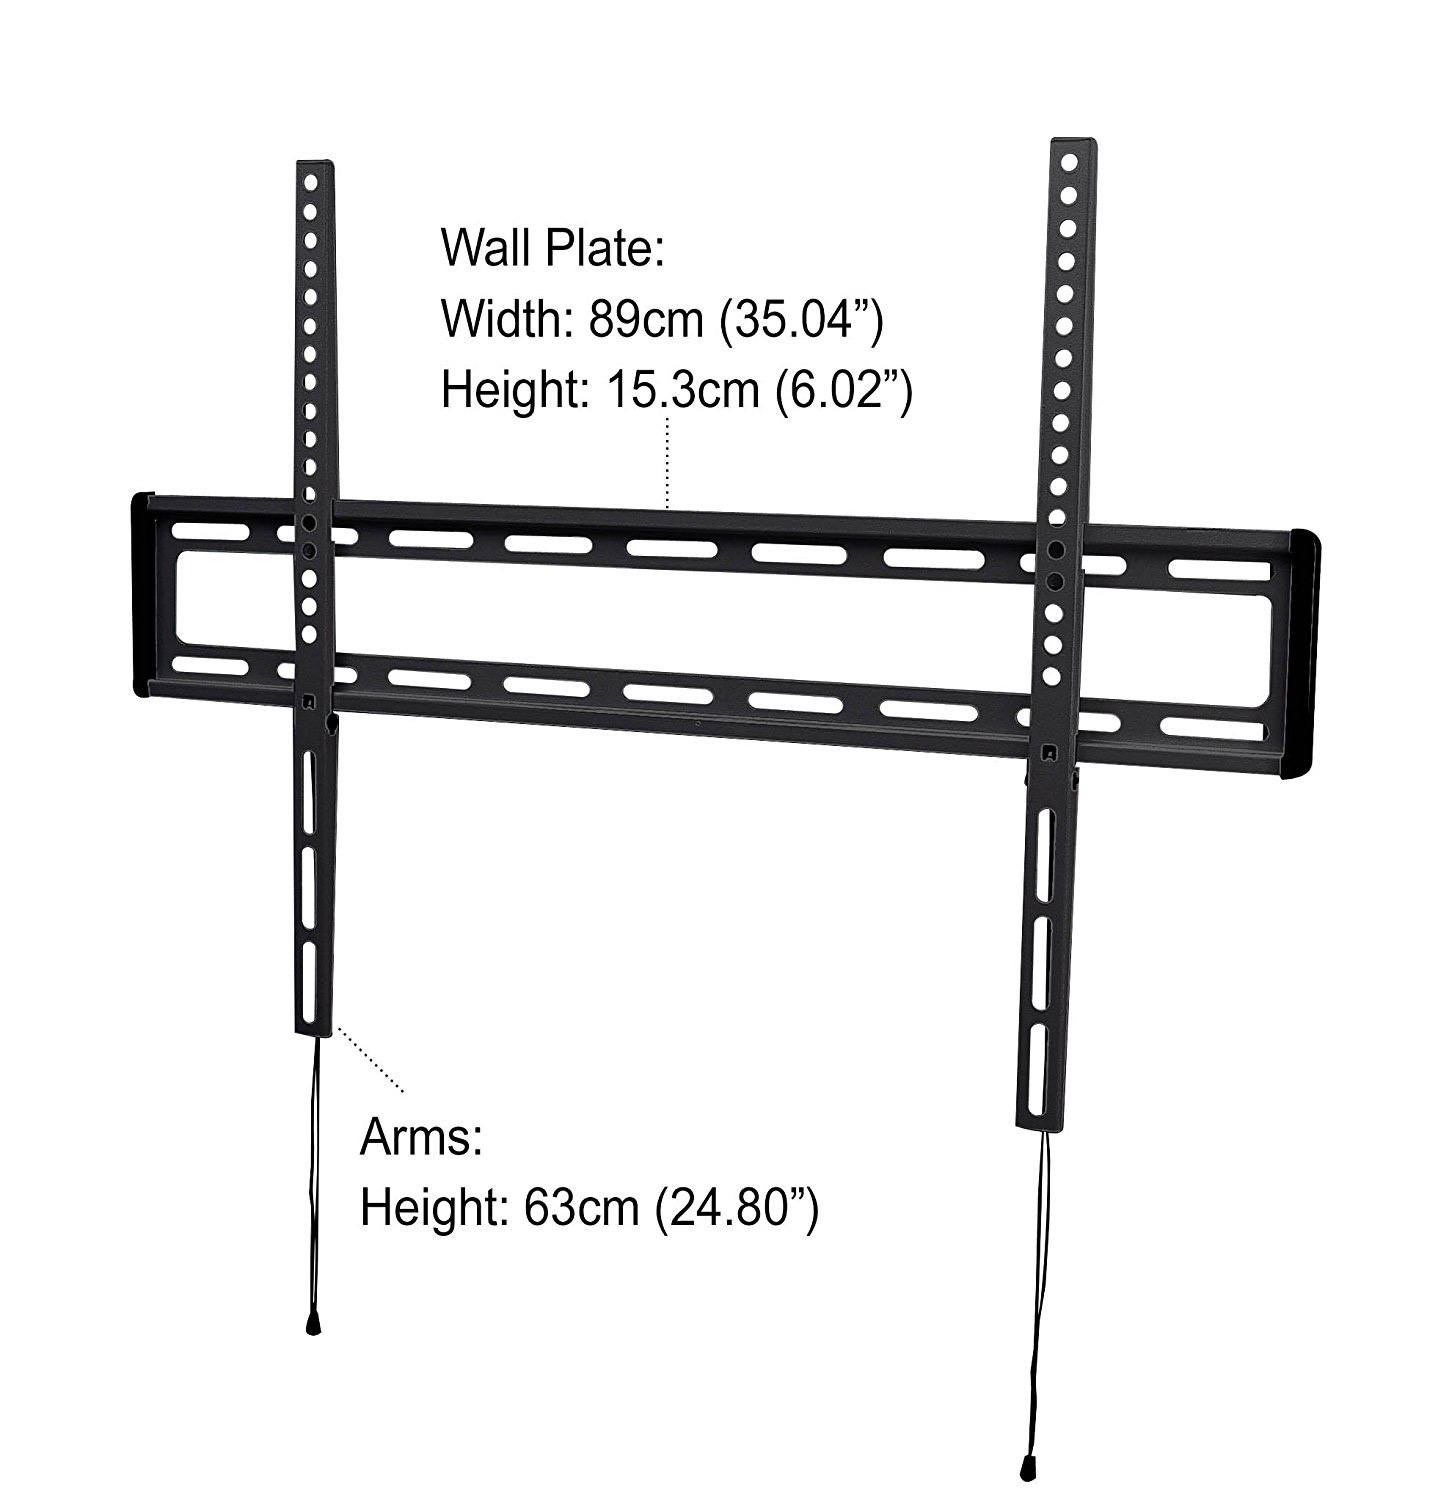 Iq Low Profile Flat Wall Mount For 47 To 84 Flat Panel